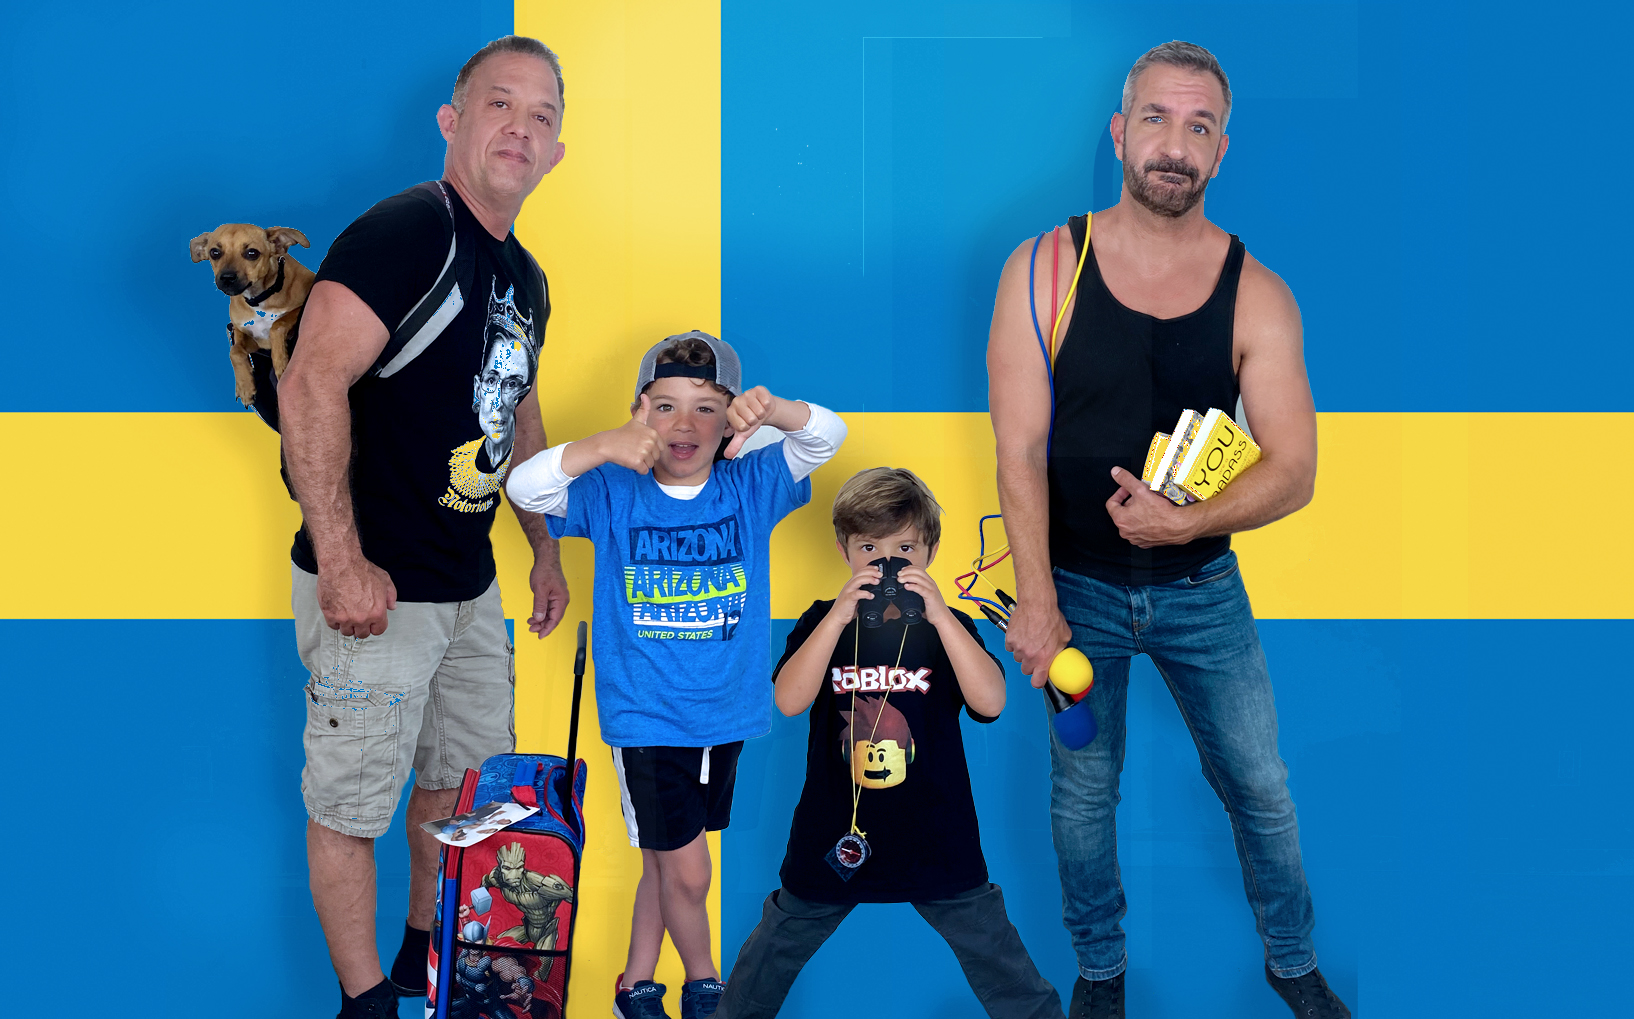 Daddy Squared Around The World: Sweden